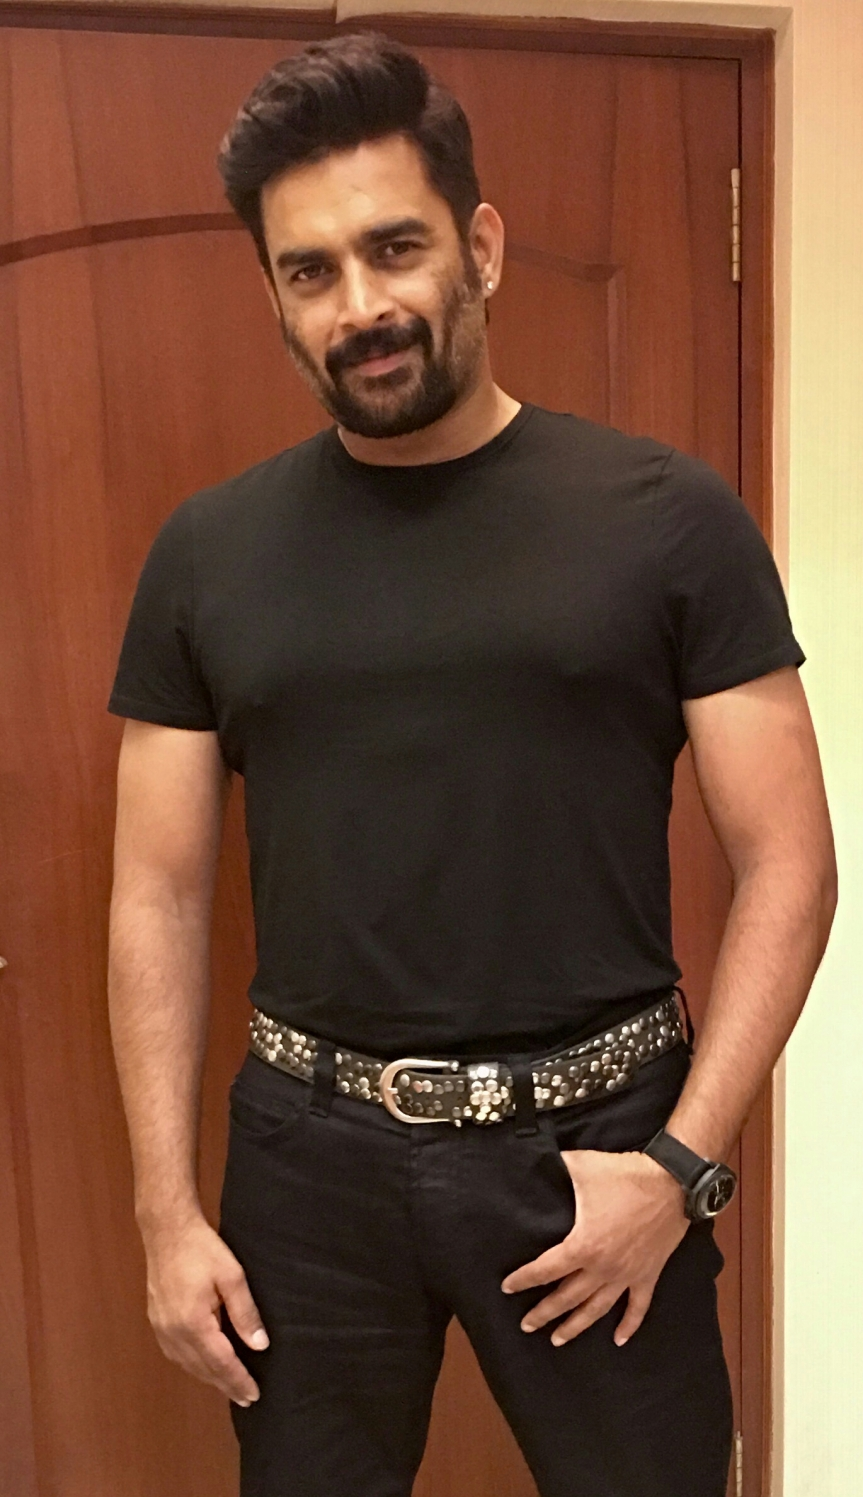 R Madhavan joins the cast of Bollywood's first space film Chandamama DoorKe!